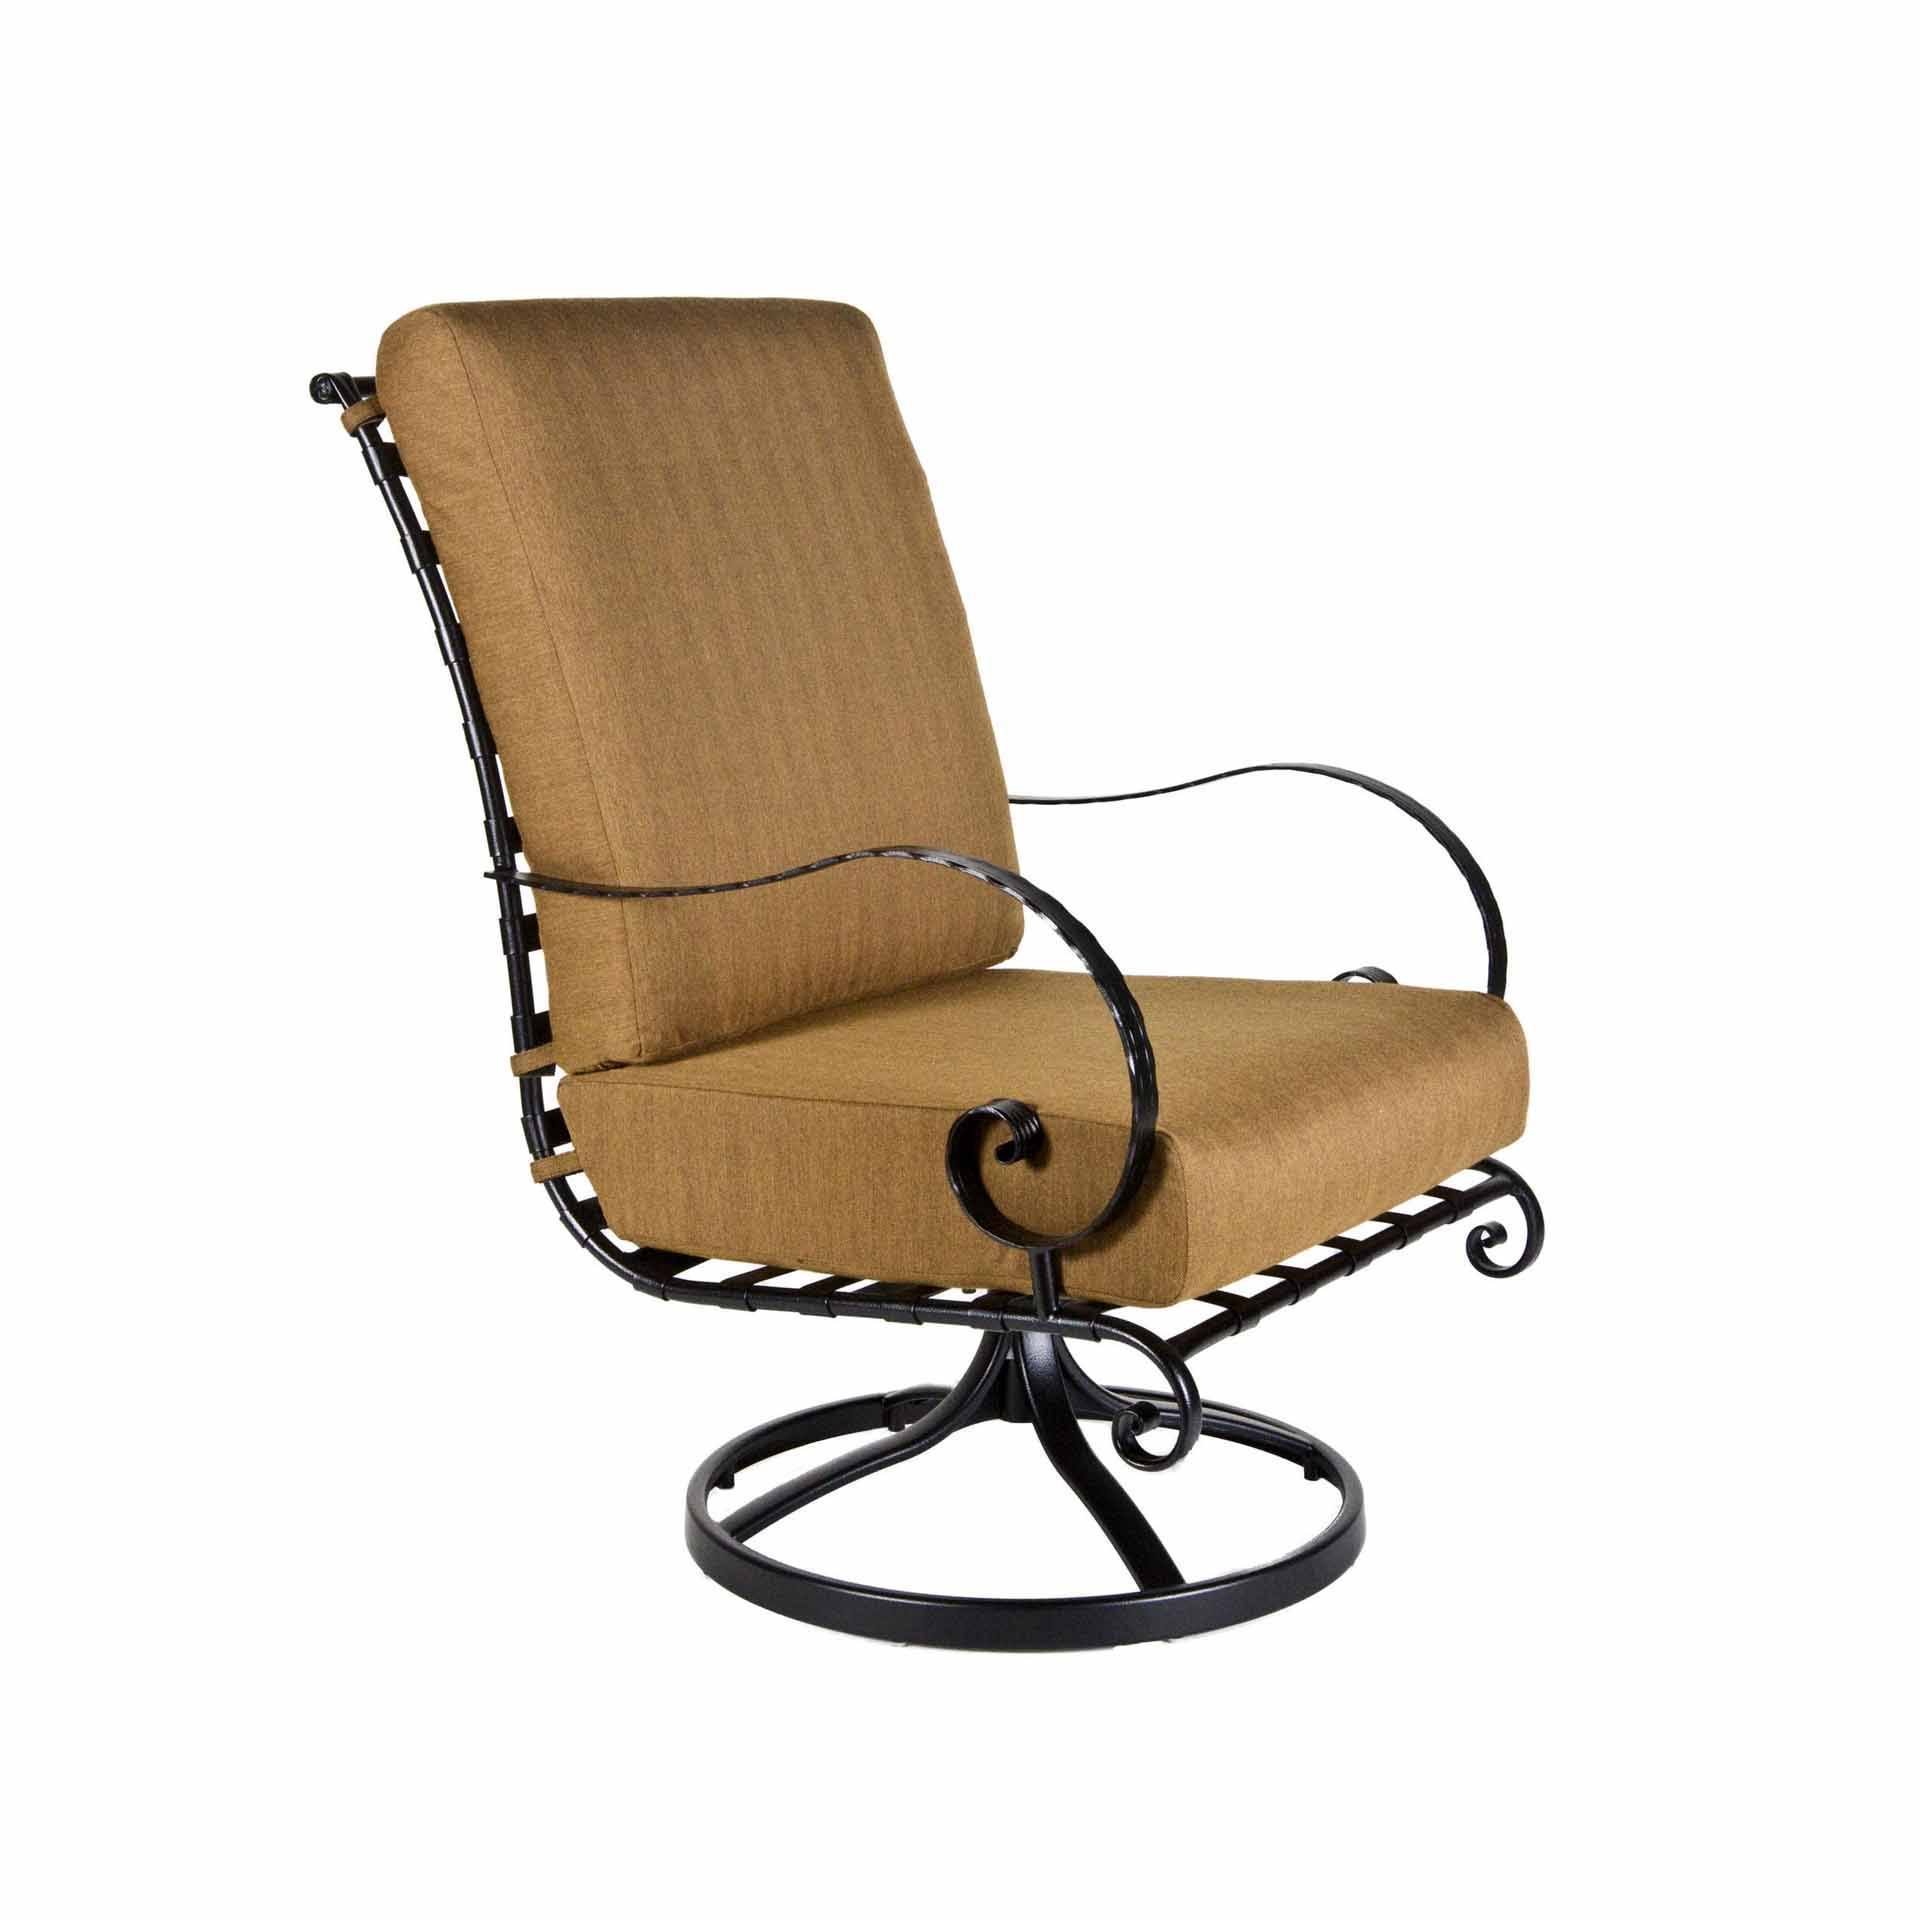 Ow Lee Classico Hi Back Swivel Rocker Lounge Chair